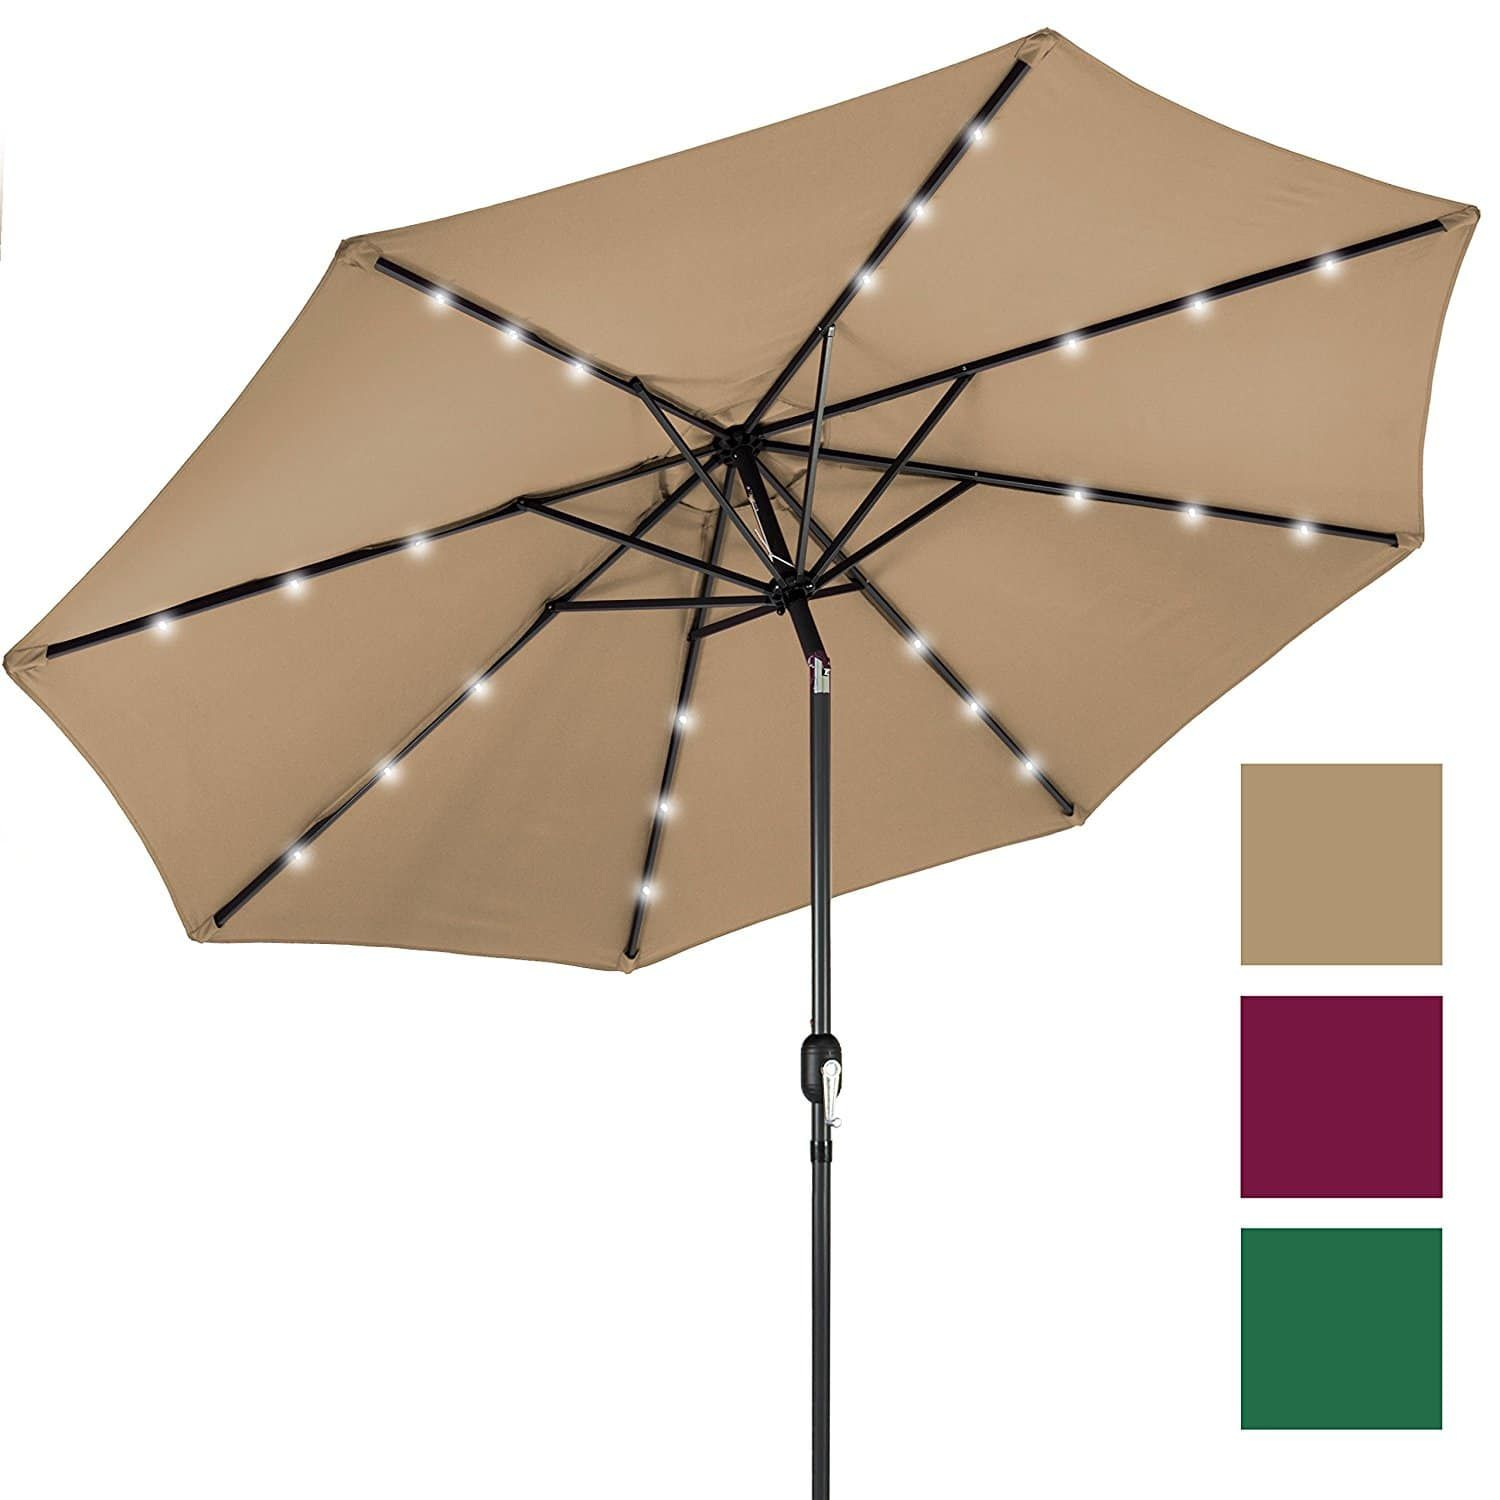 Patio Umbrellas Are Fast Becoming Part And Parcel Of The Outdoor Decoration The Below Review Will Indicate Some Important Features To Look At Before